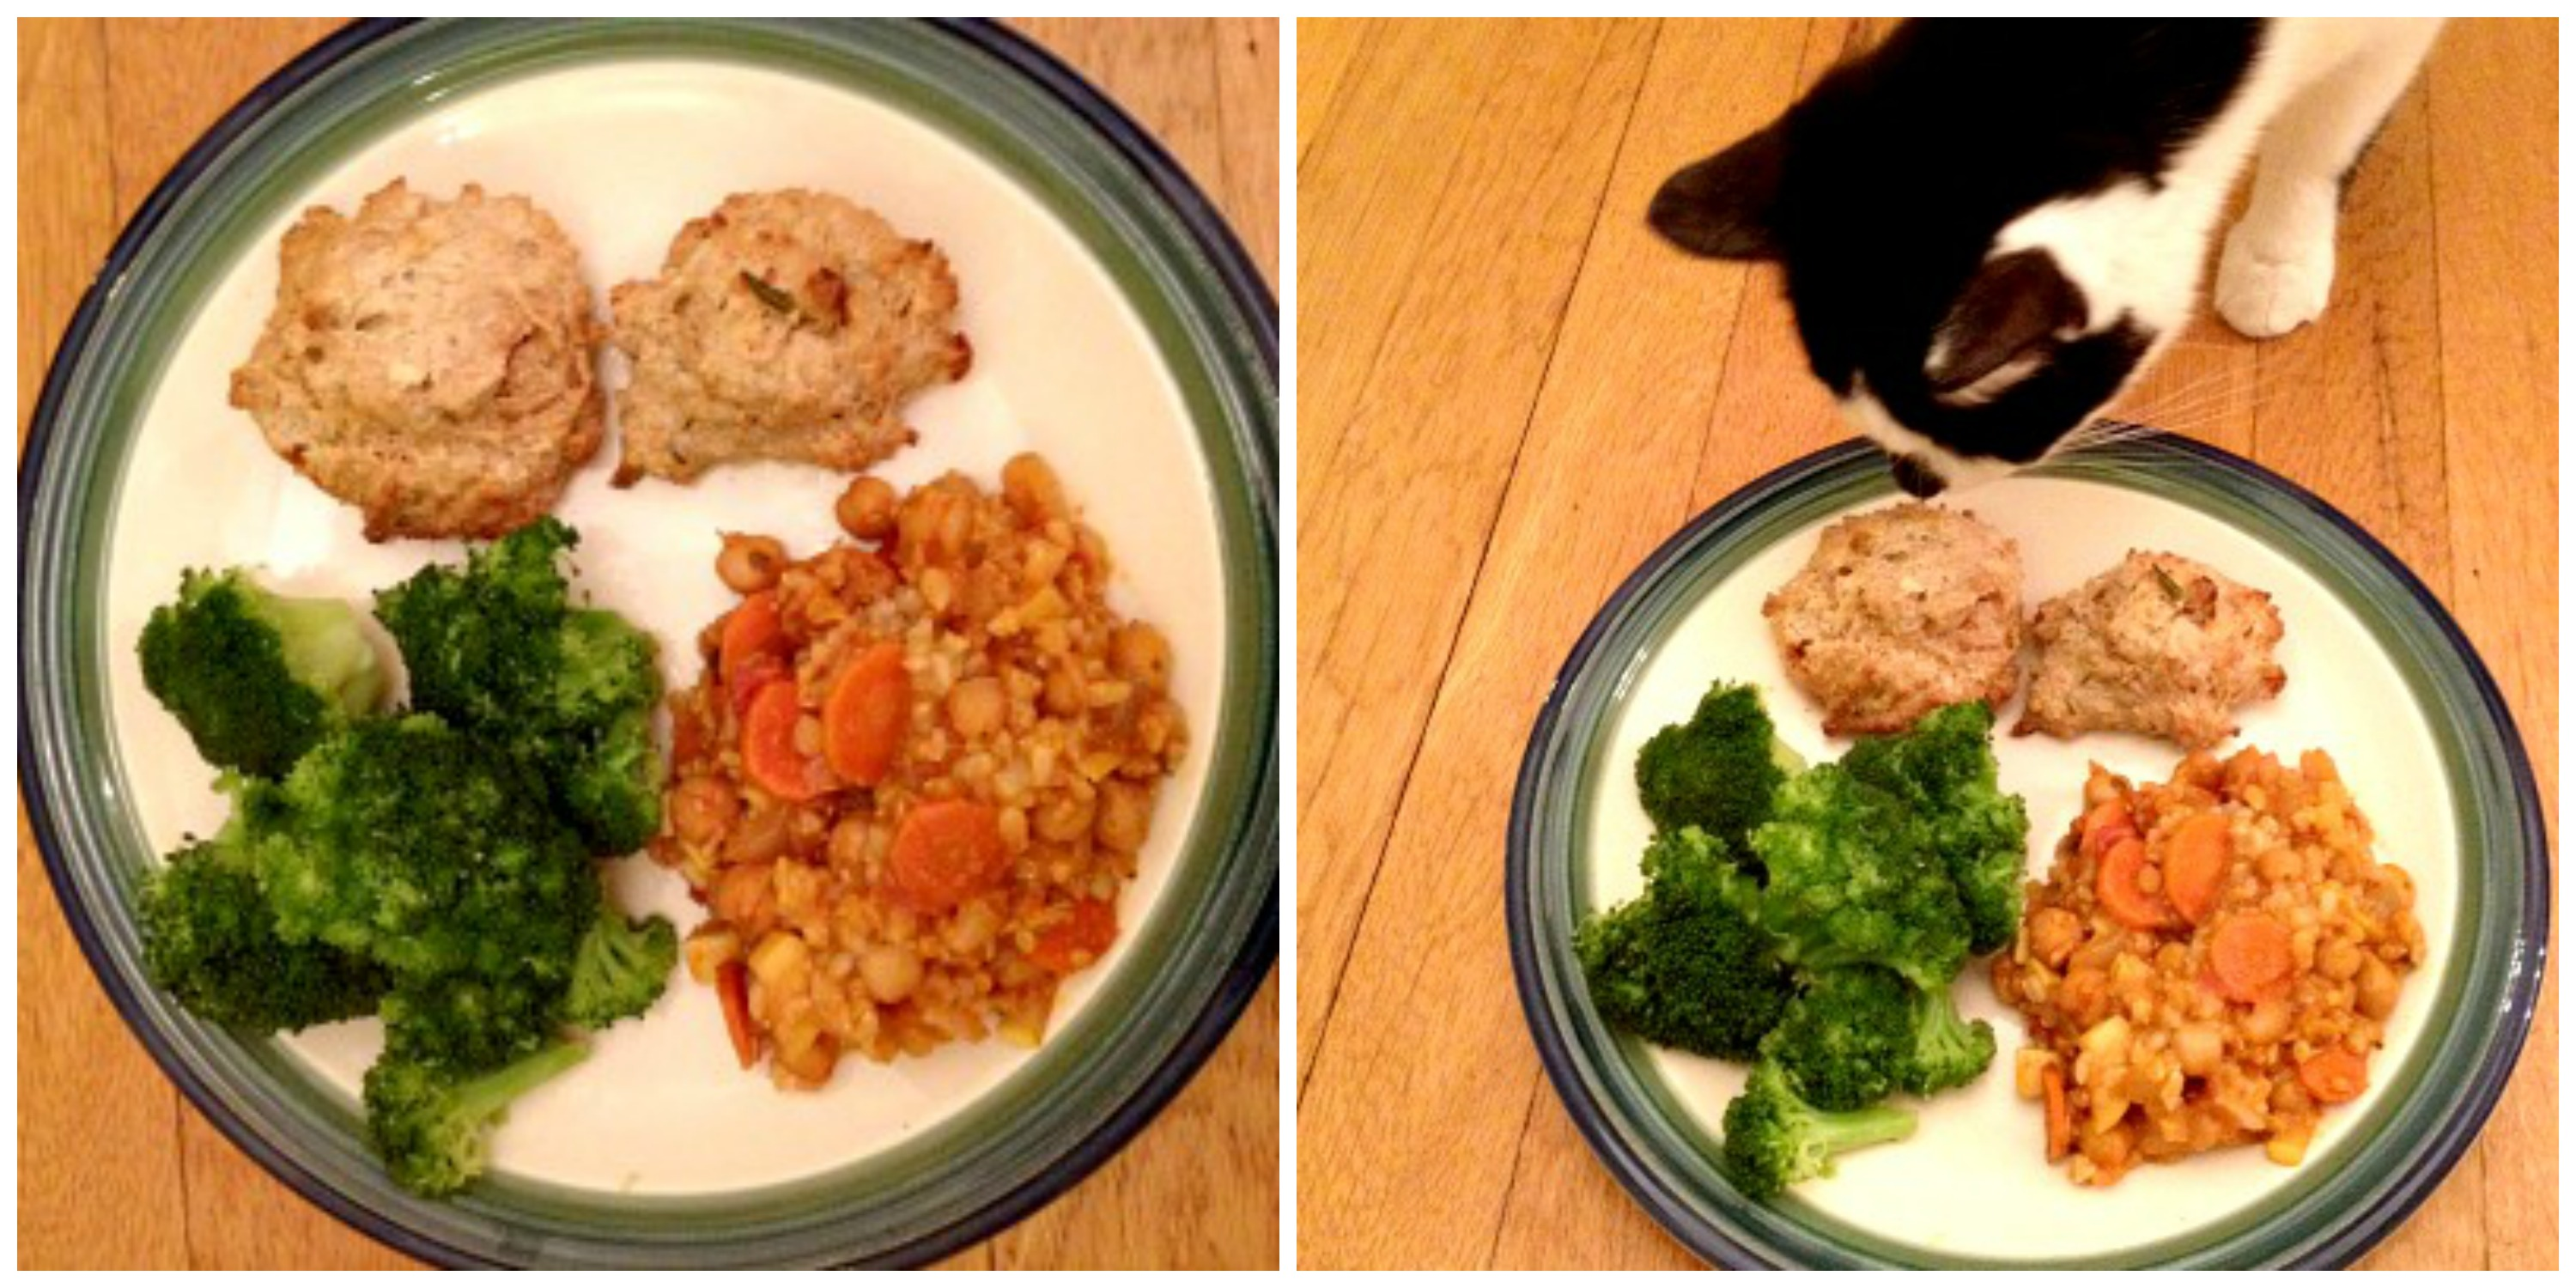 No Kitty, this is my pot pie.